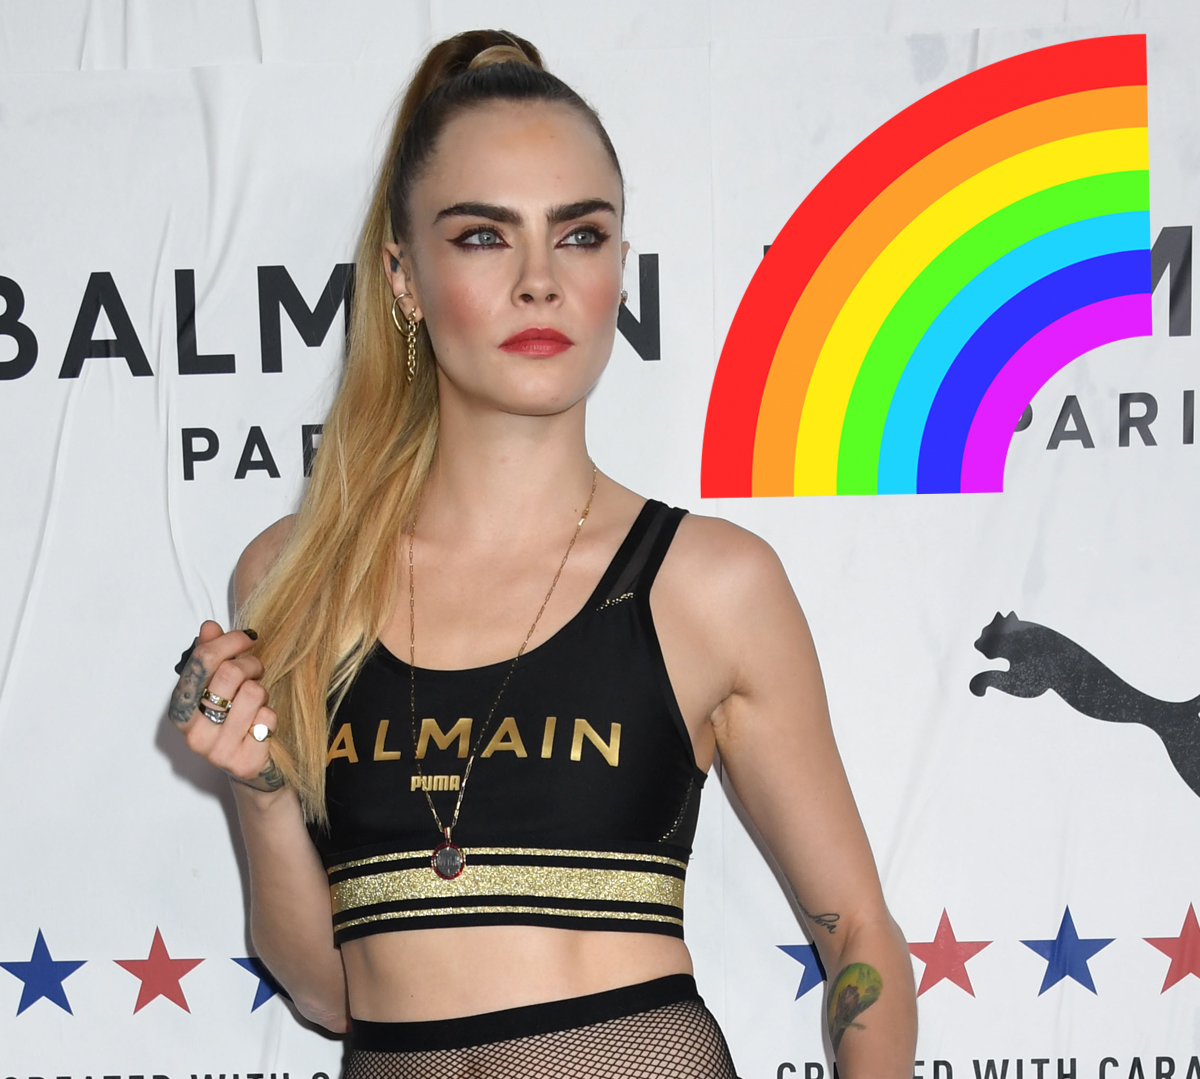 Cara Delevingne Recalls 'Suicidal' Moments Due To 'Shame' About Her Sexuality